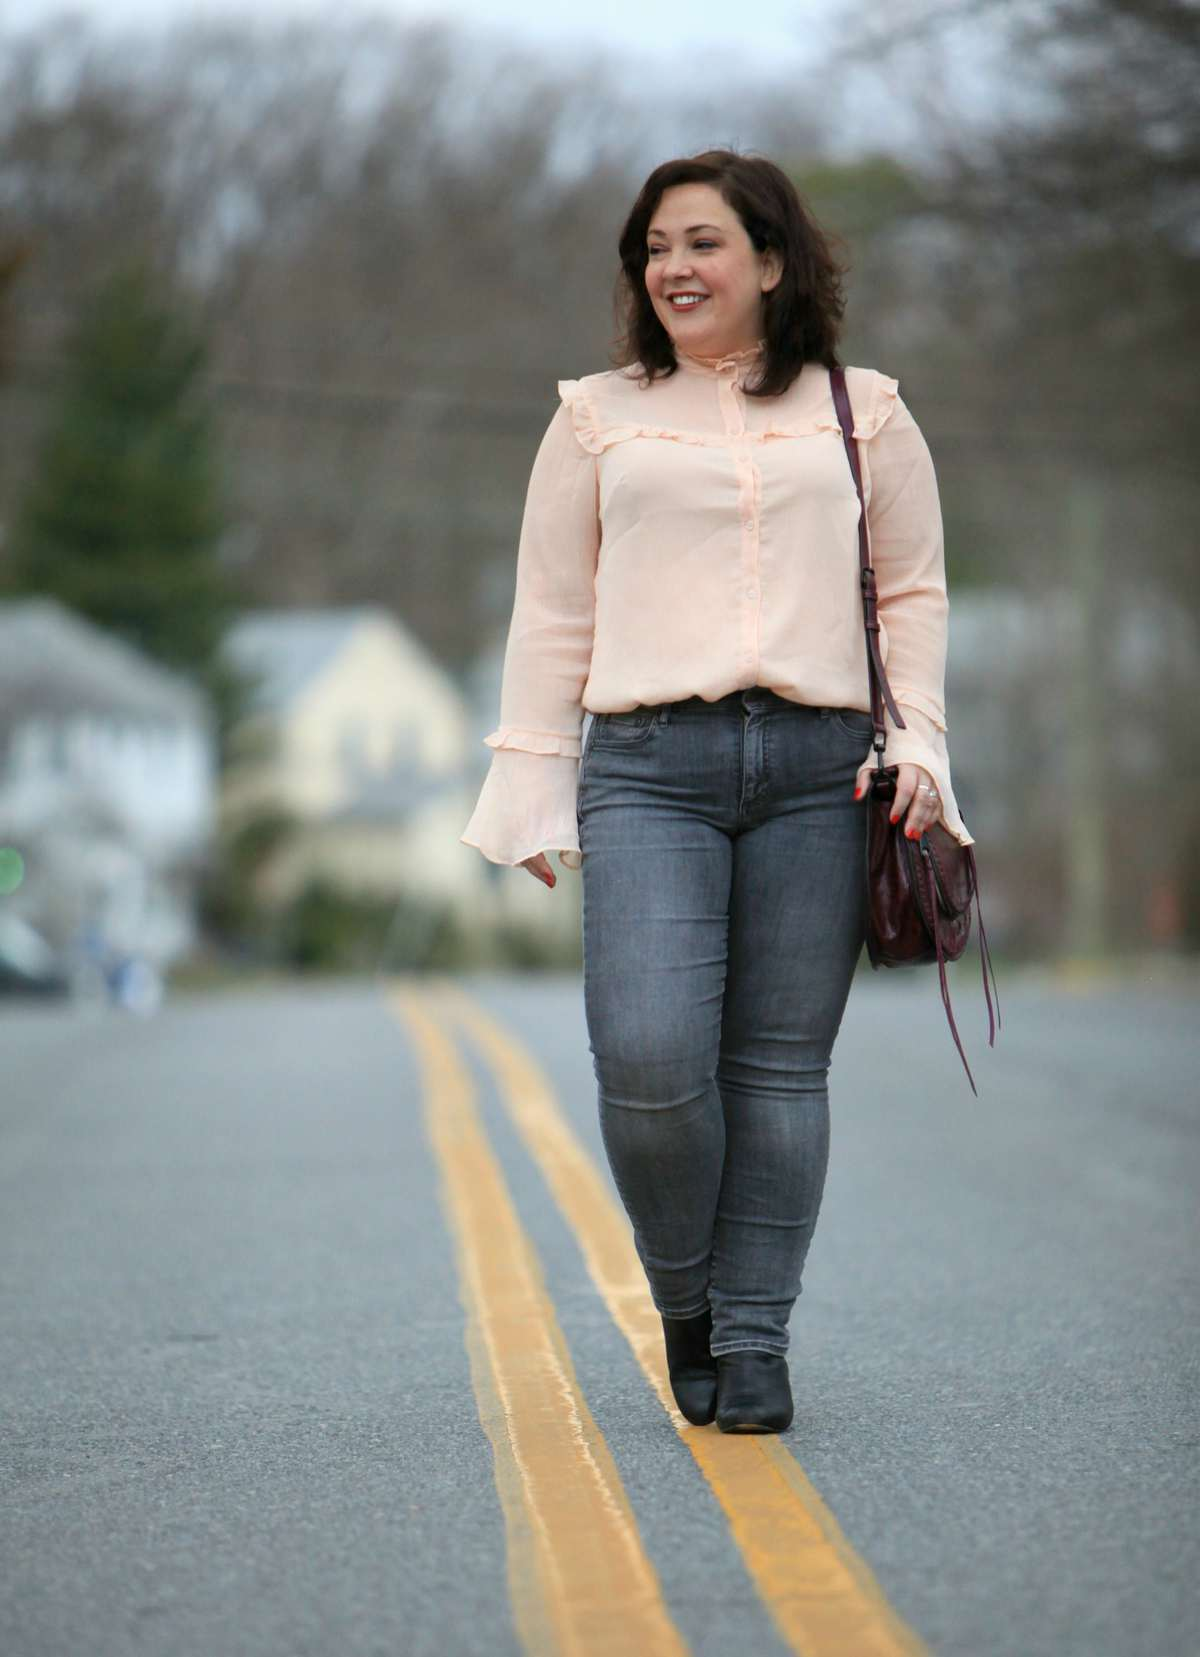 Wardrobe Oxygen over 40 fashion blogger in ELOQUII blouse and Gap Real Straight jeans